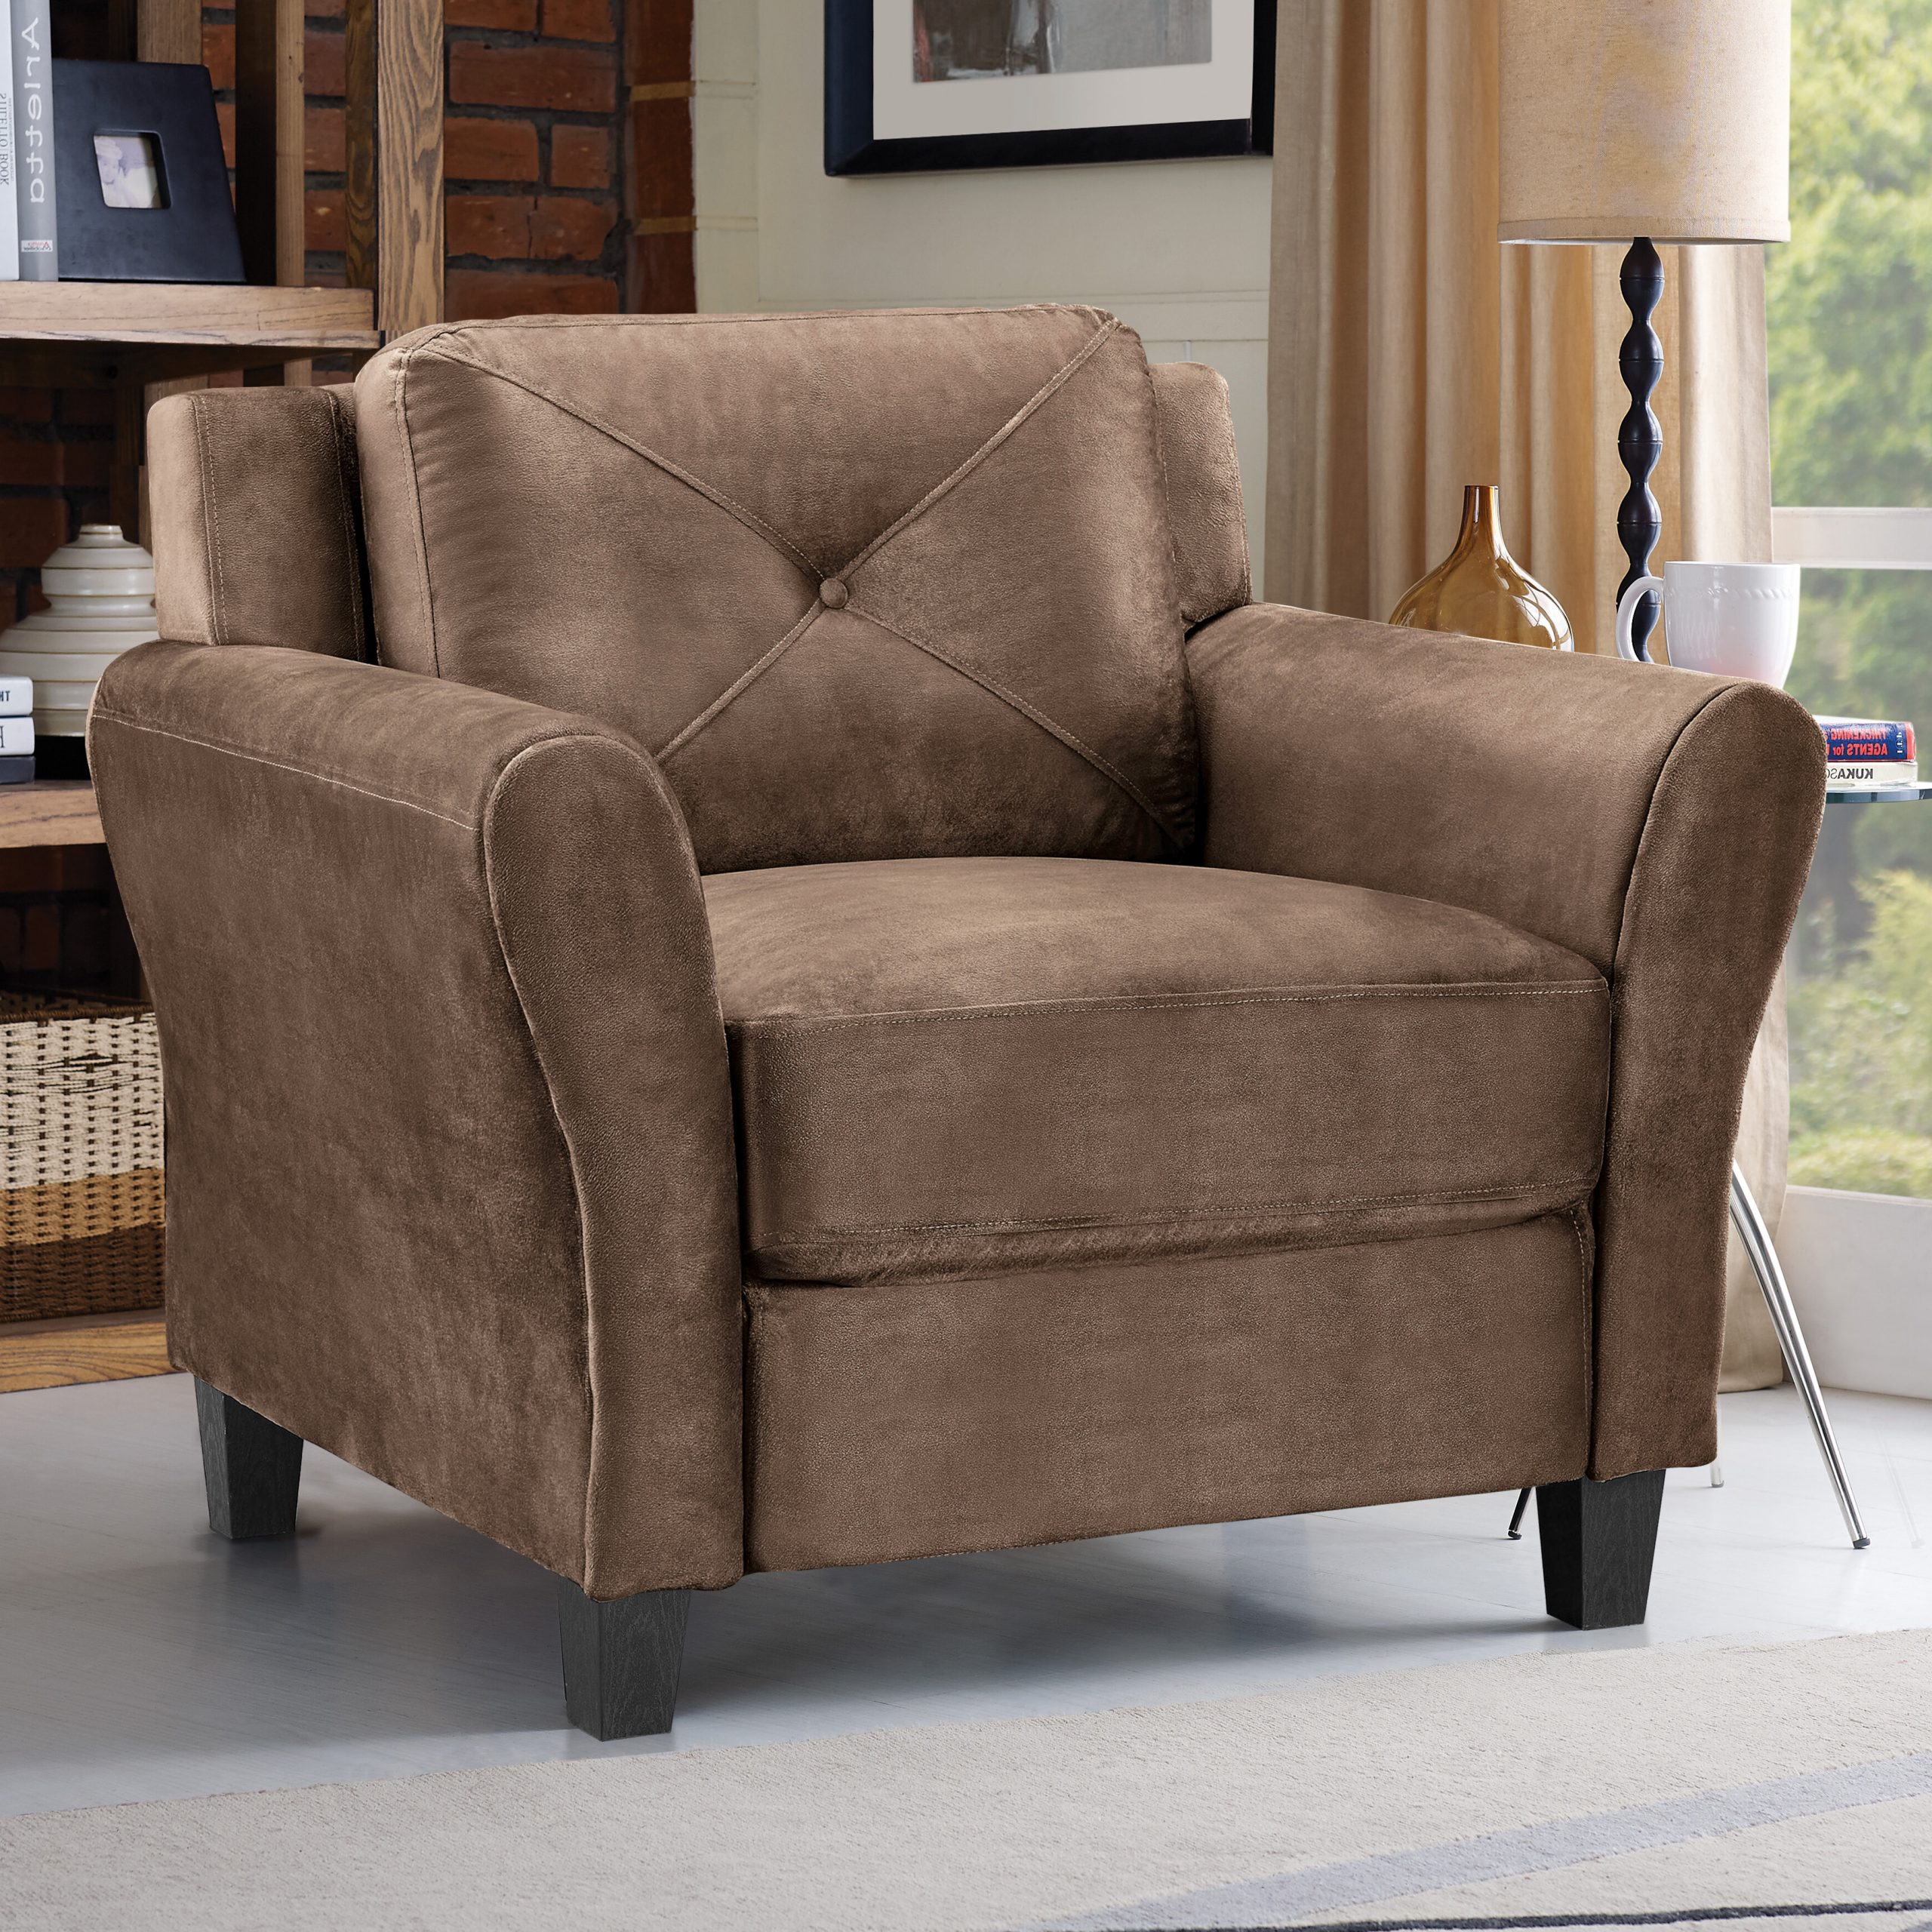 Wayfair With Regard To Famous Sheldon Tufted Top Grain Leather Club Chairs (View 19 of 20)